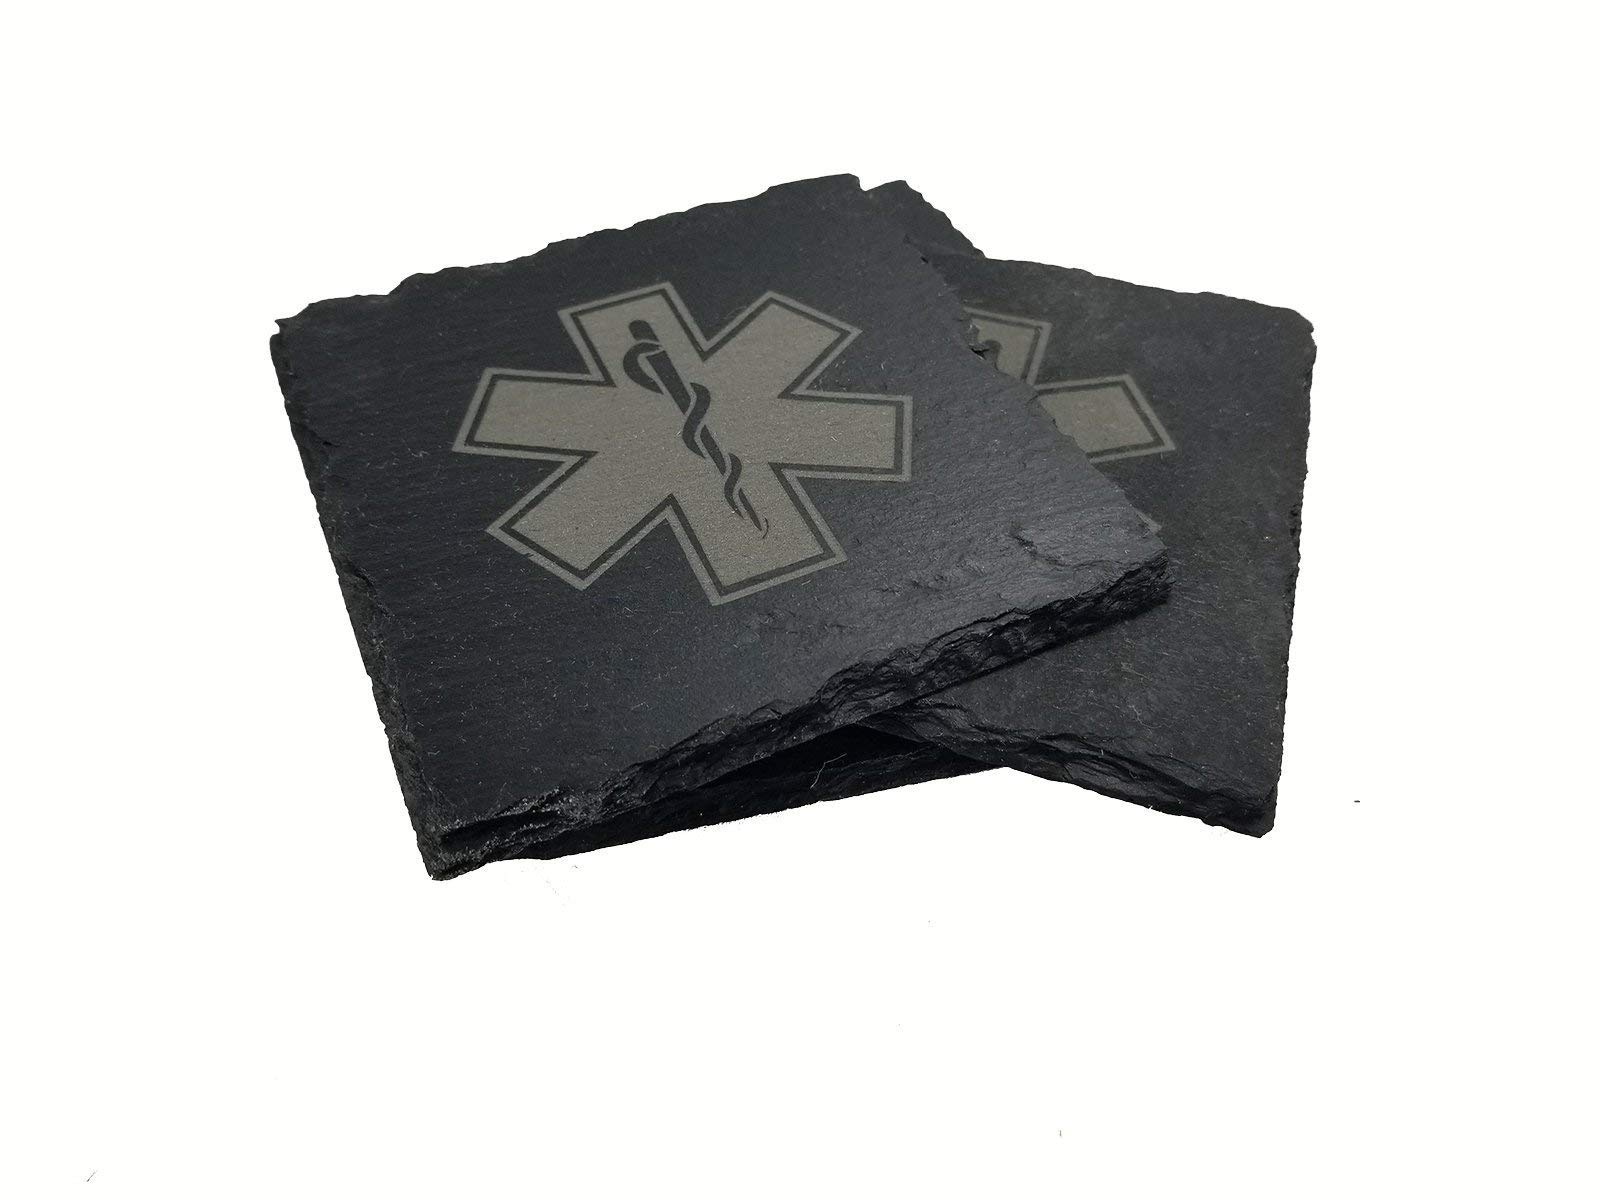 EMT/EMS/Paramedic Slate Coaster Set by five1designs